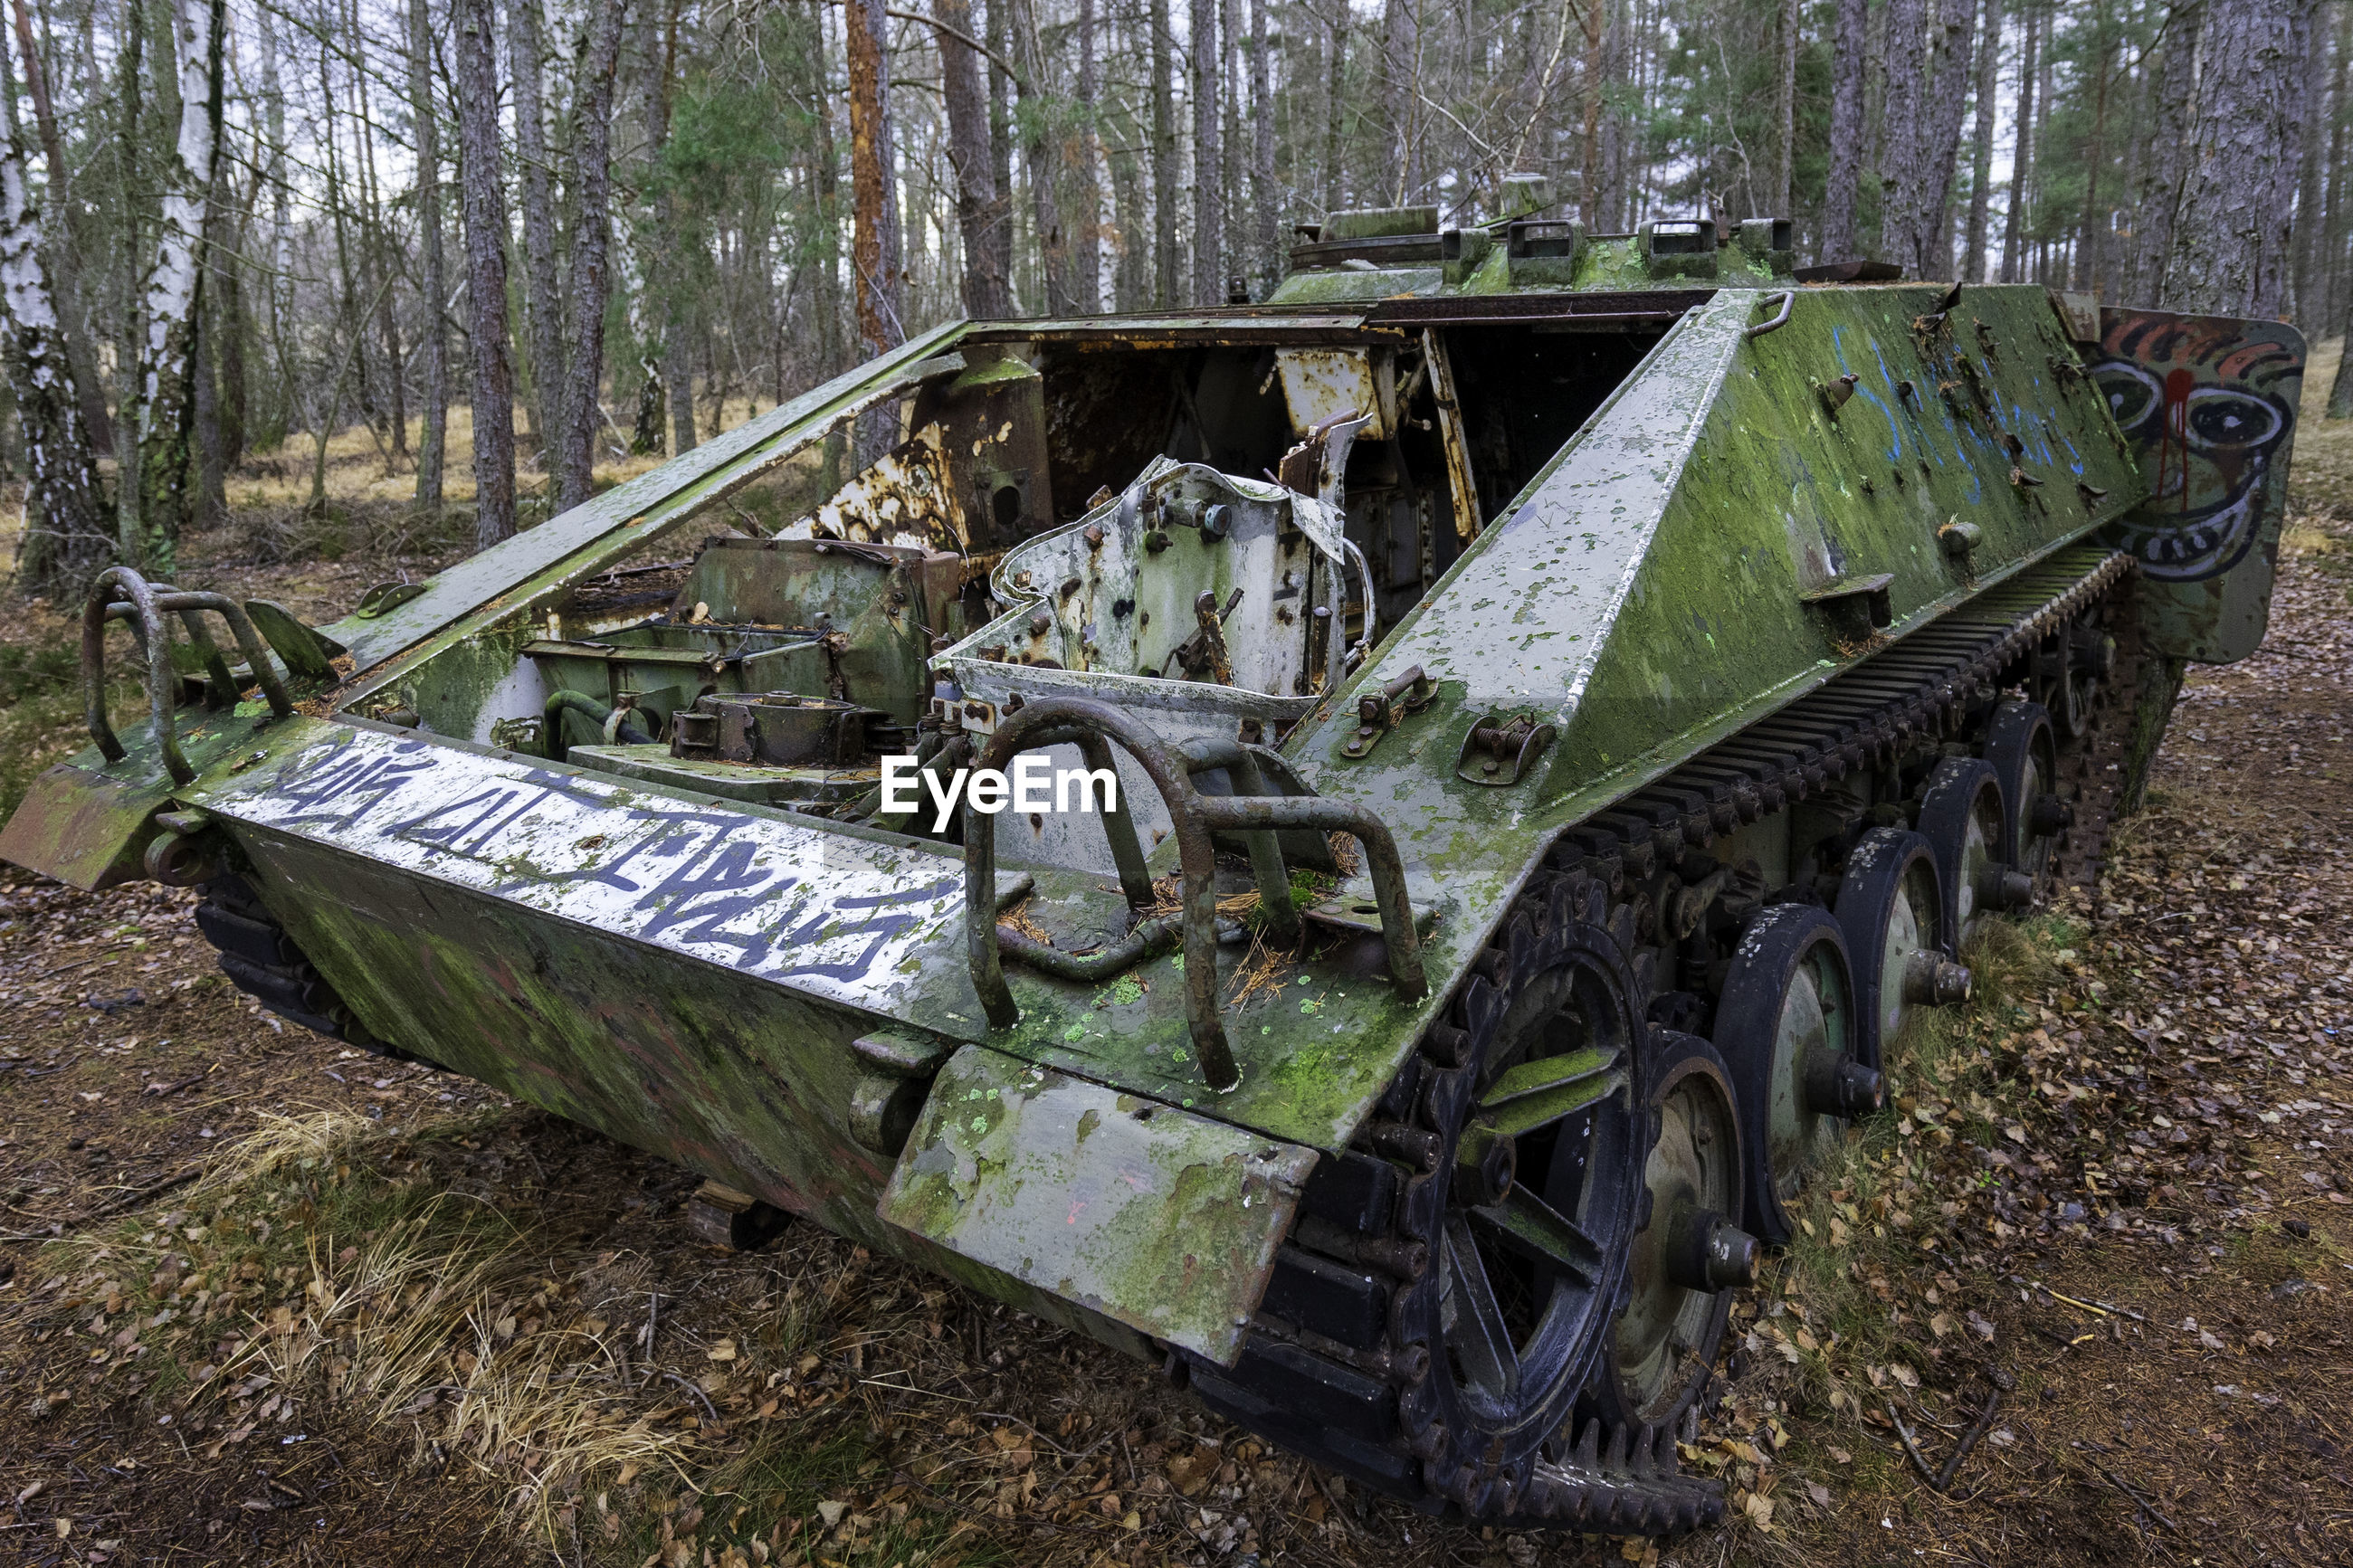 Abandoned tank in a forest